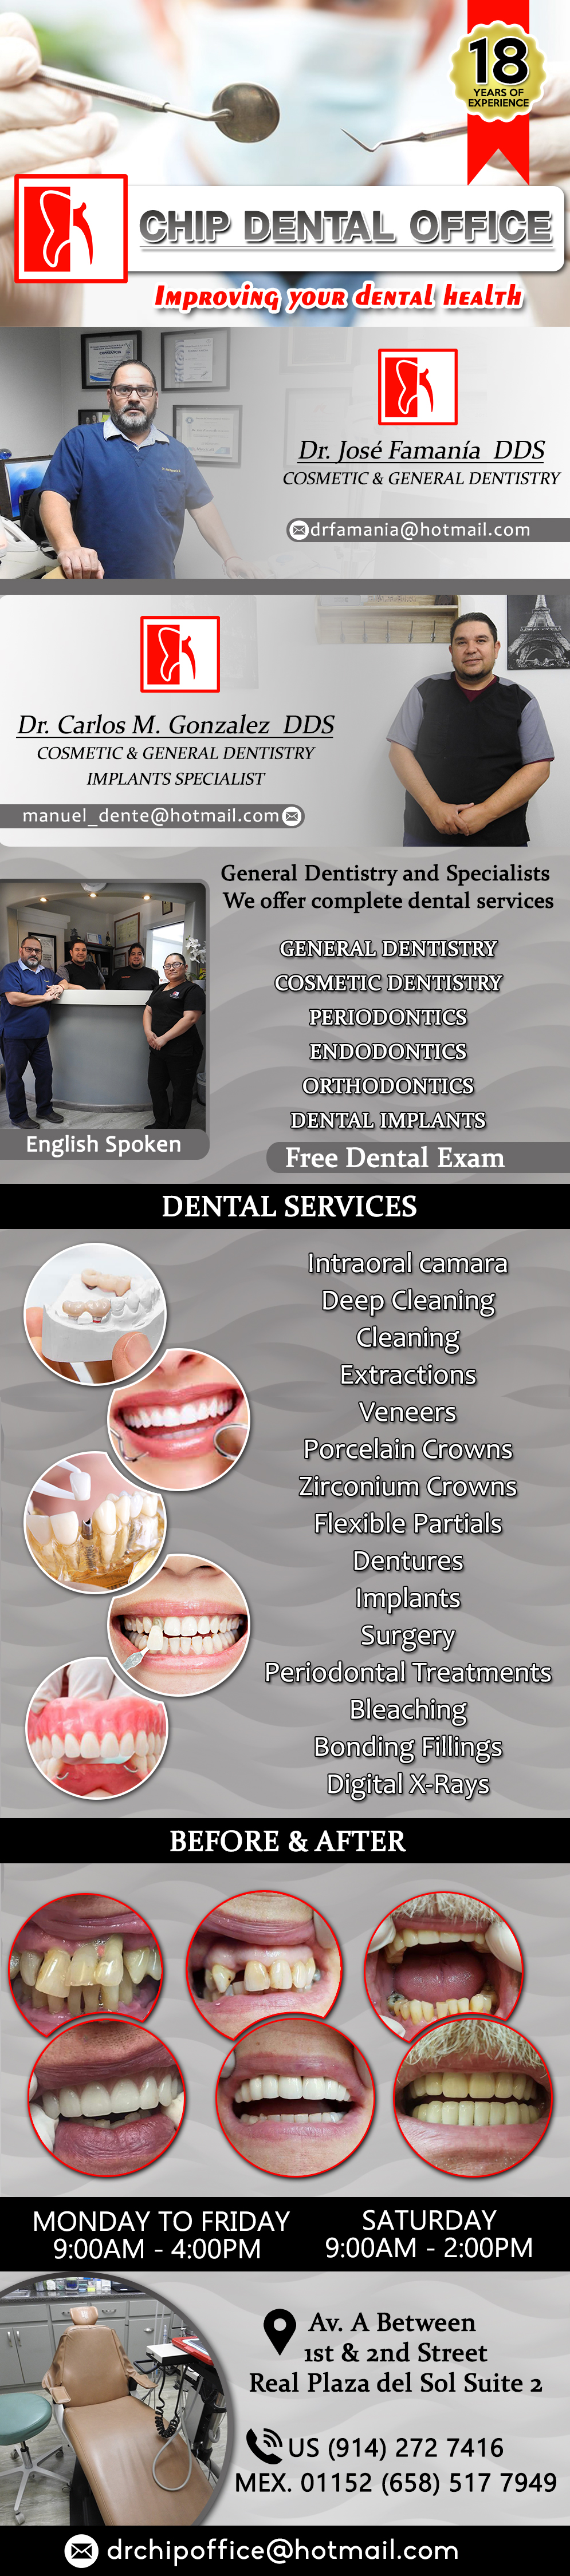 Chip Dental  Office JOSE FAMANIA DDS  CARLOS GONZALEZ DDS in Algodones  in Algodones  General Dentistry and Specialists We offer complete dental services including general dentistry, cosmetic dentistry, periodontics, endodontics, orthodontics and dental implants. Bridges °X-Rays °Porcelain Veneers °Metal Crowns °Dental Bonding °Deep Cleaning °Denture Repair °Traditional Acrylic Dentures °Prescriptions °Root Canals °Metal Bridges °White Fillings °Root Canal Therapy Relines (Hard or Soft) °General Oral Surgeries °Porcelain Crowns °Flexible Partials °Composite Posts °Teeth Whitening °Extractions °Flexible Parials Implants °Porcelain Veneers °Wisdom Tooth Extractions °Metal Posts °Traditional Cleaning °Metal/Acrylic Partials                                     General Dentistry and Specialists We offer complete dental services including general dentistry, cosmetic dentistry, periodontics, endodontics, orthodontics and dental implants. Bridges °X-Rays °Porcelain Veneers °Metal Crowns °Dental Bonding °Deep Cleaning °Denture Repair °Traditional Acrylic Dentures °Prescriptions °Root Canals °Metal Bridges °White Fillings °Root Canal Therapy Relines (Hard or Soft) °General Oral Surgeries °Porcelain Crowns °Flexible Partials °Composite Posts °Teeth Whitening °Extractions °Flexible Parials Implants °Porcelain Veneers °Wisdom Tooth Extractions °Metal Posts °Traditional Cleaning °Metal/Acrylic Partials